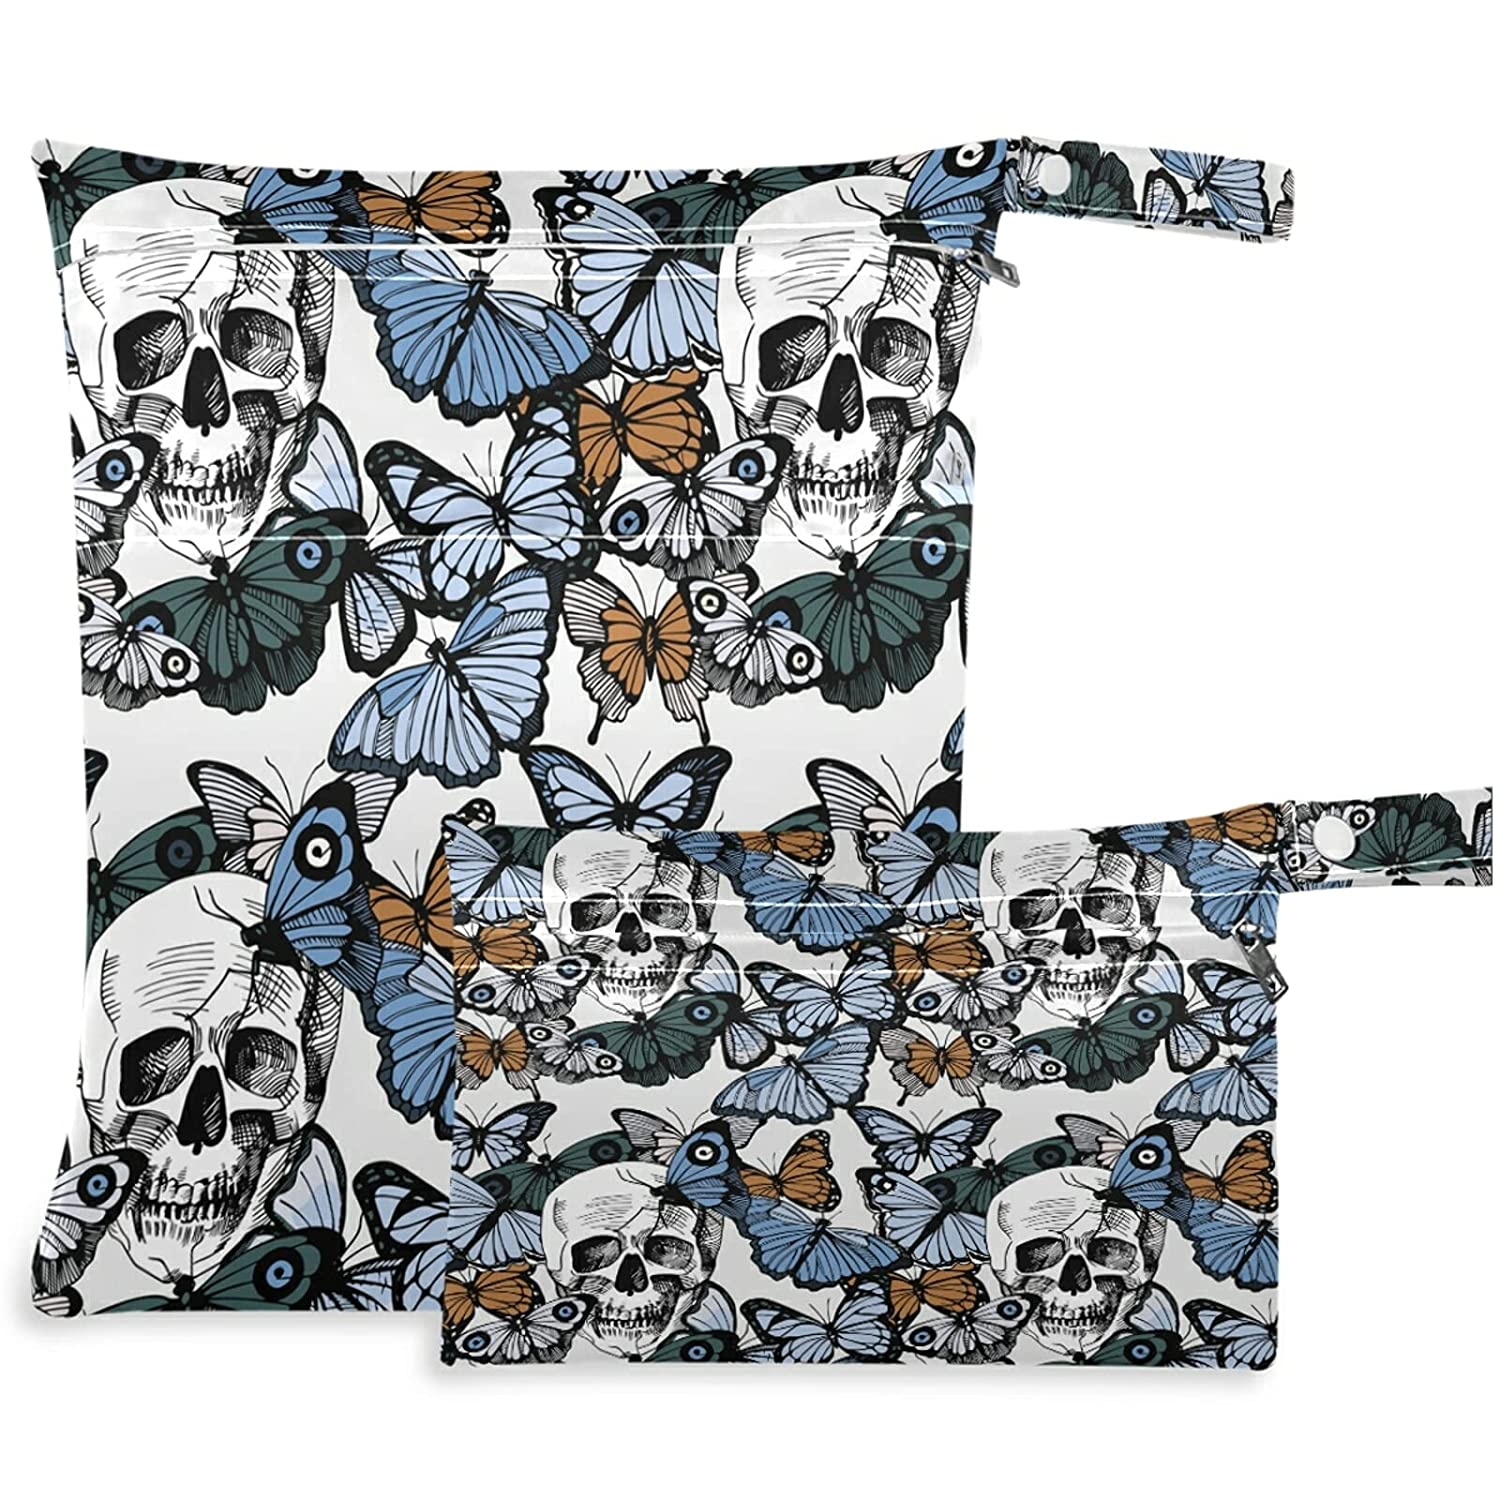 visesunny Retro Dead Skull Butterfly Max 67% OFF Wet Bag with Zippered Ranking TOP4 2Pcs